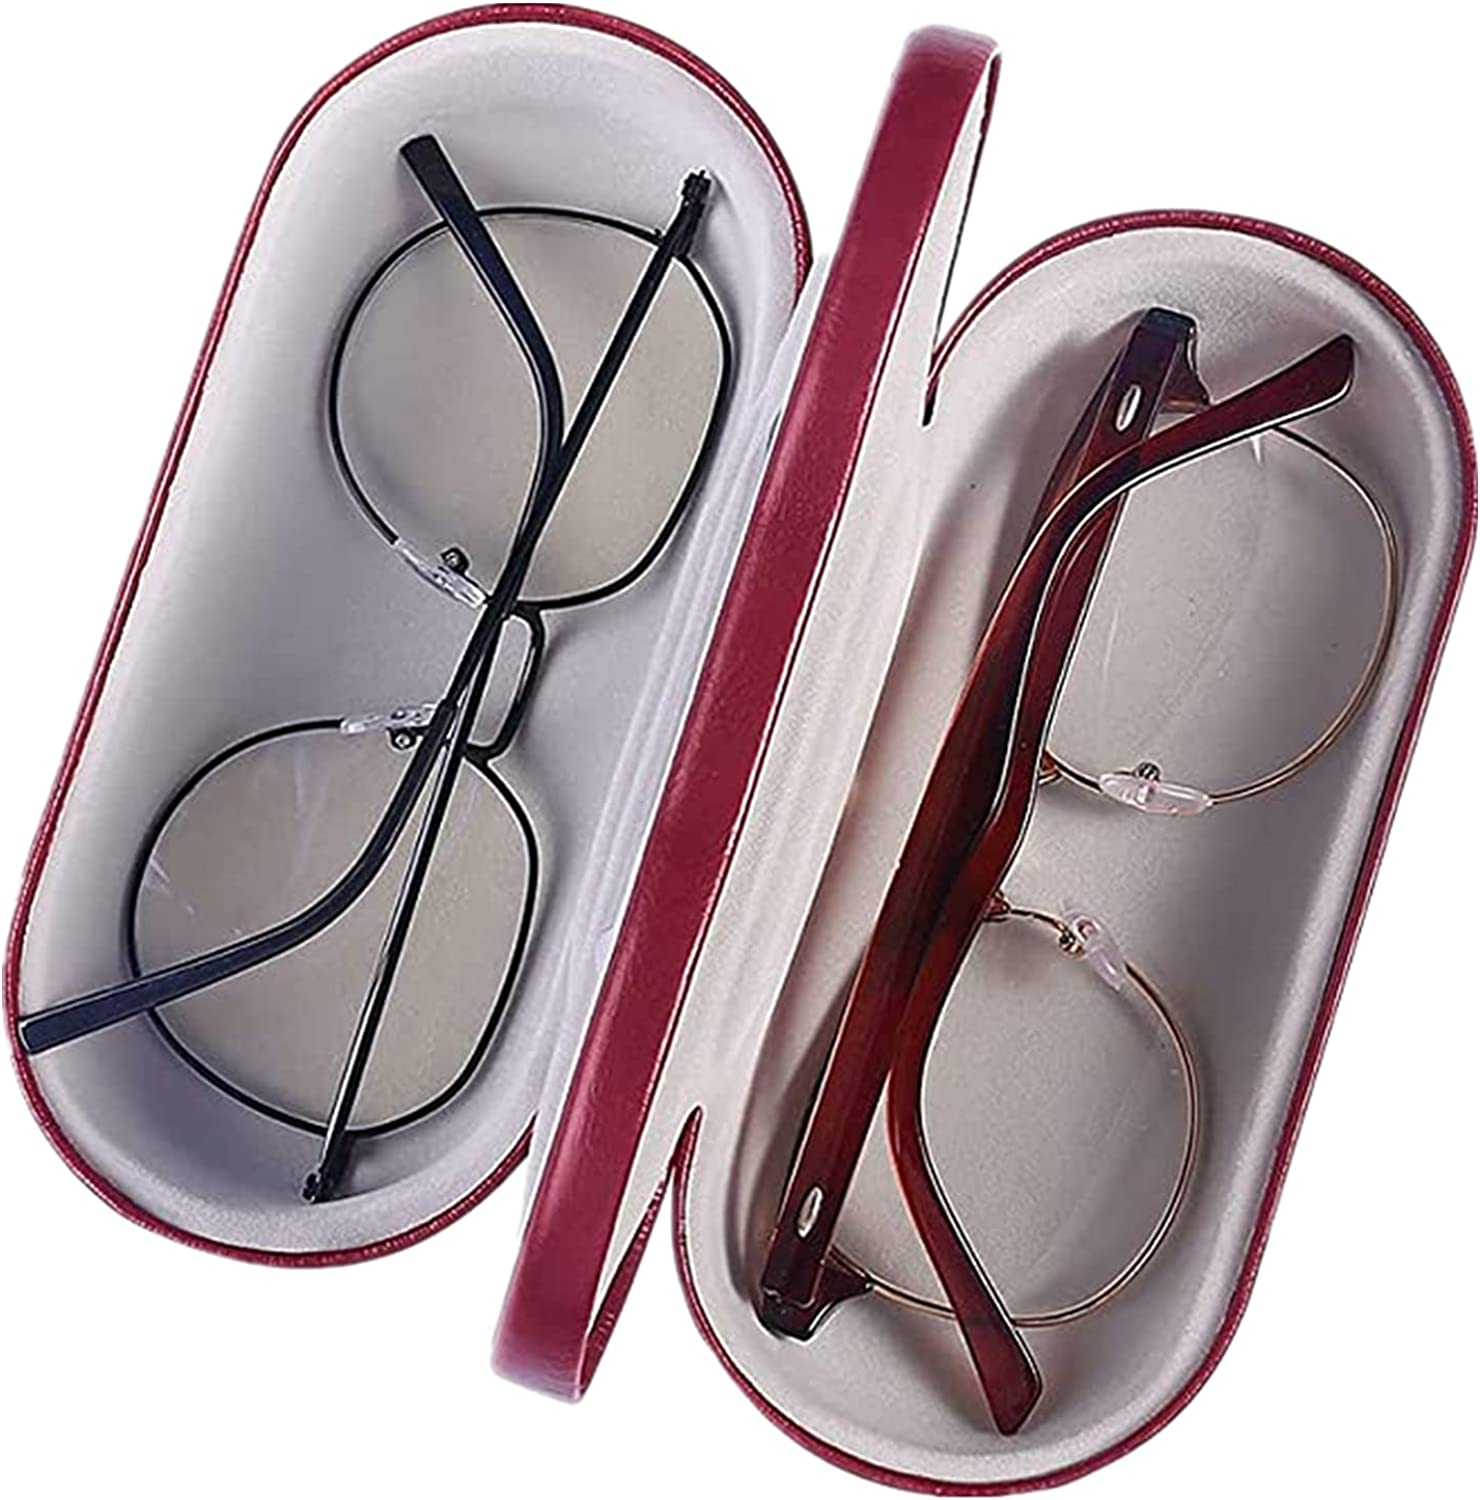 2 in 1 EyeGlasses Case, PU Leather Dual glasses Case, Double Layer Hard Shell Protective Cases for Glasses,Built in Mirror,Red Color for Women and Men